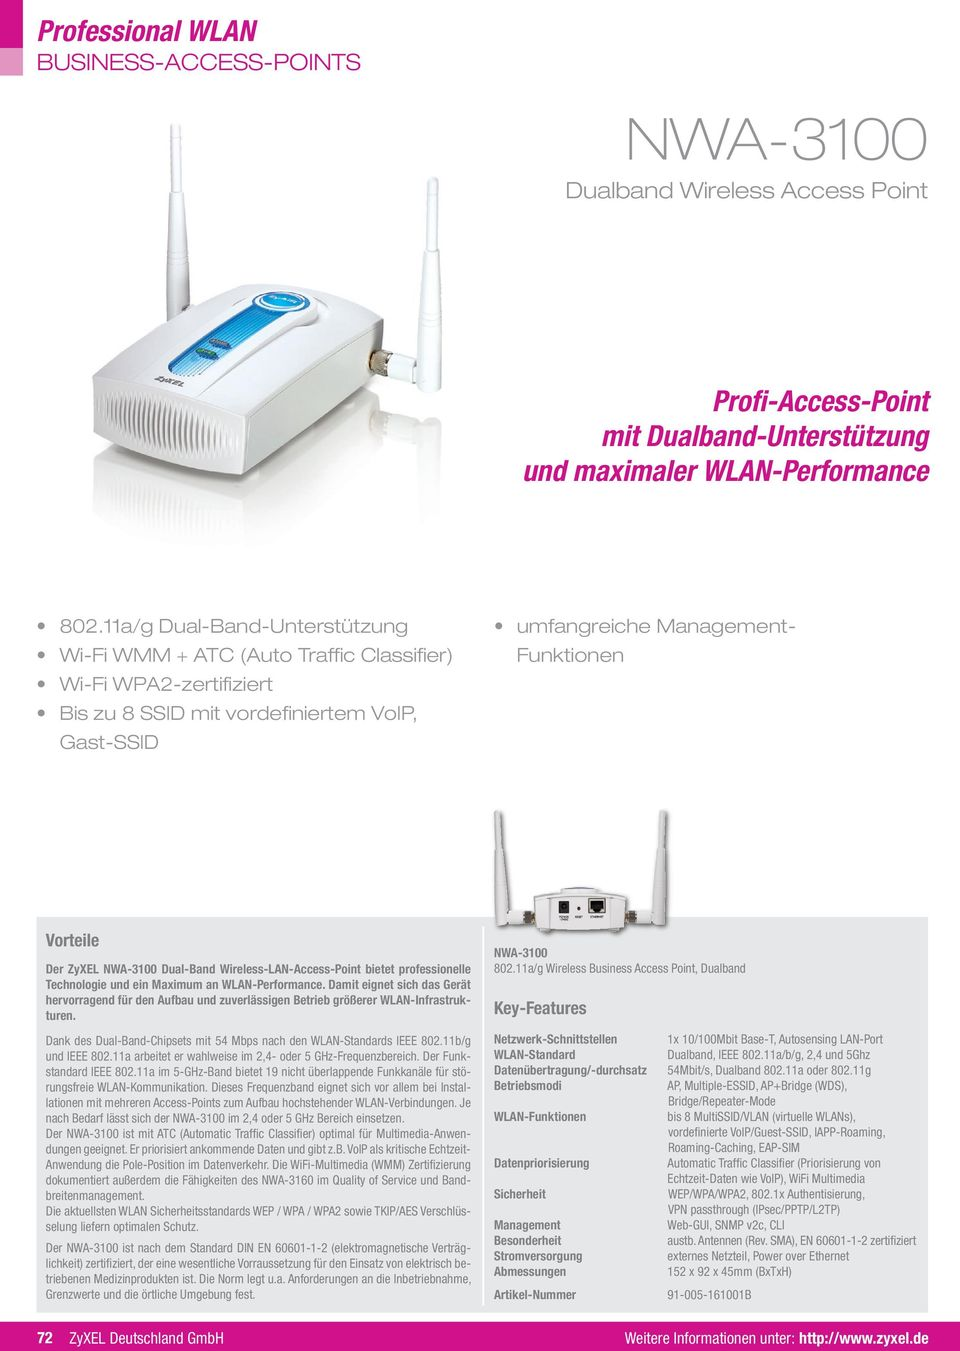 Wireless-LAN-Access-Point bietet professionelle Technologie und ein Maximum an WLAN-Performance.